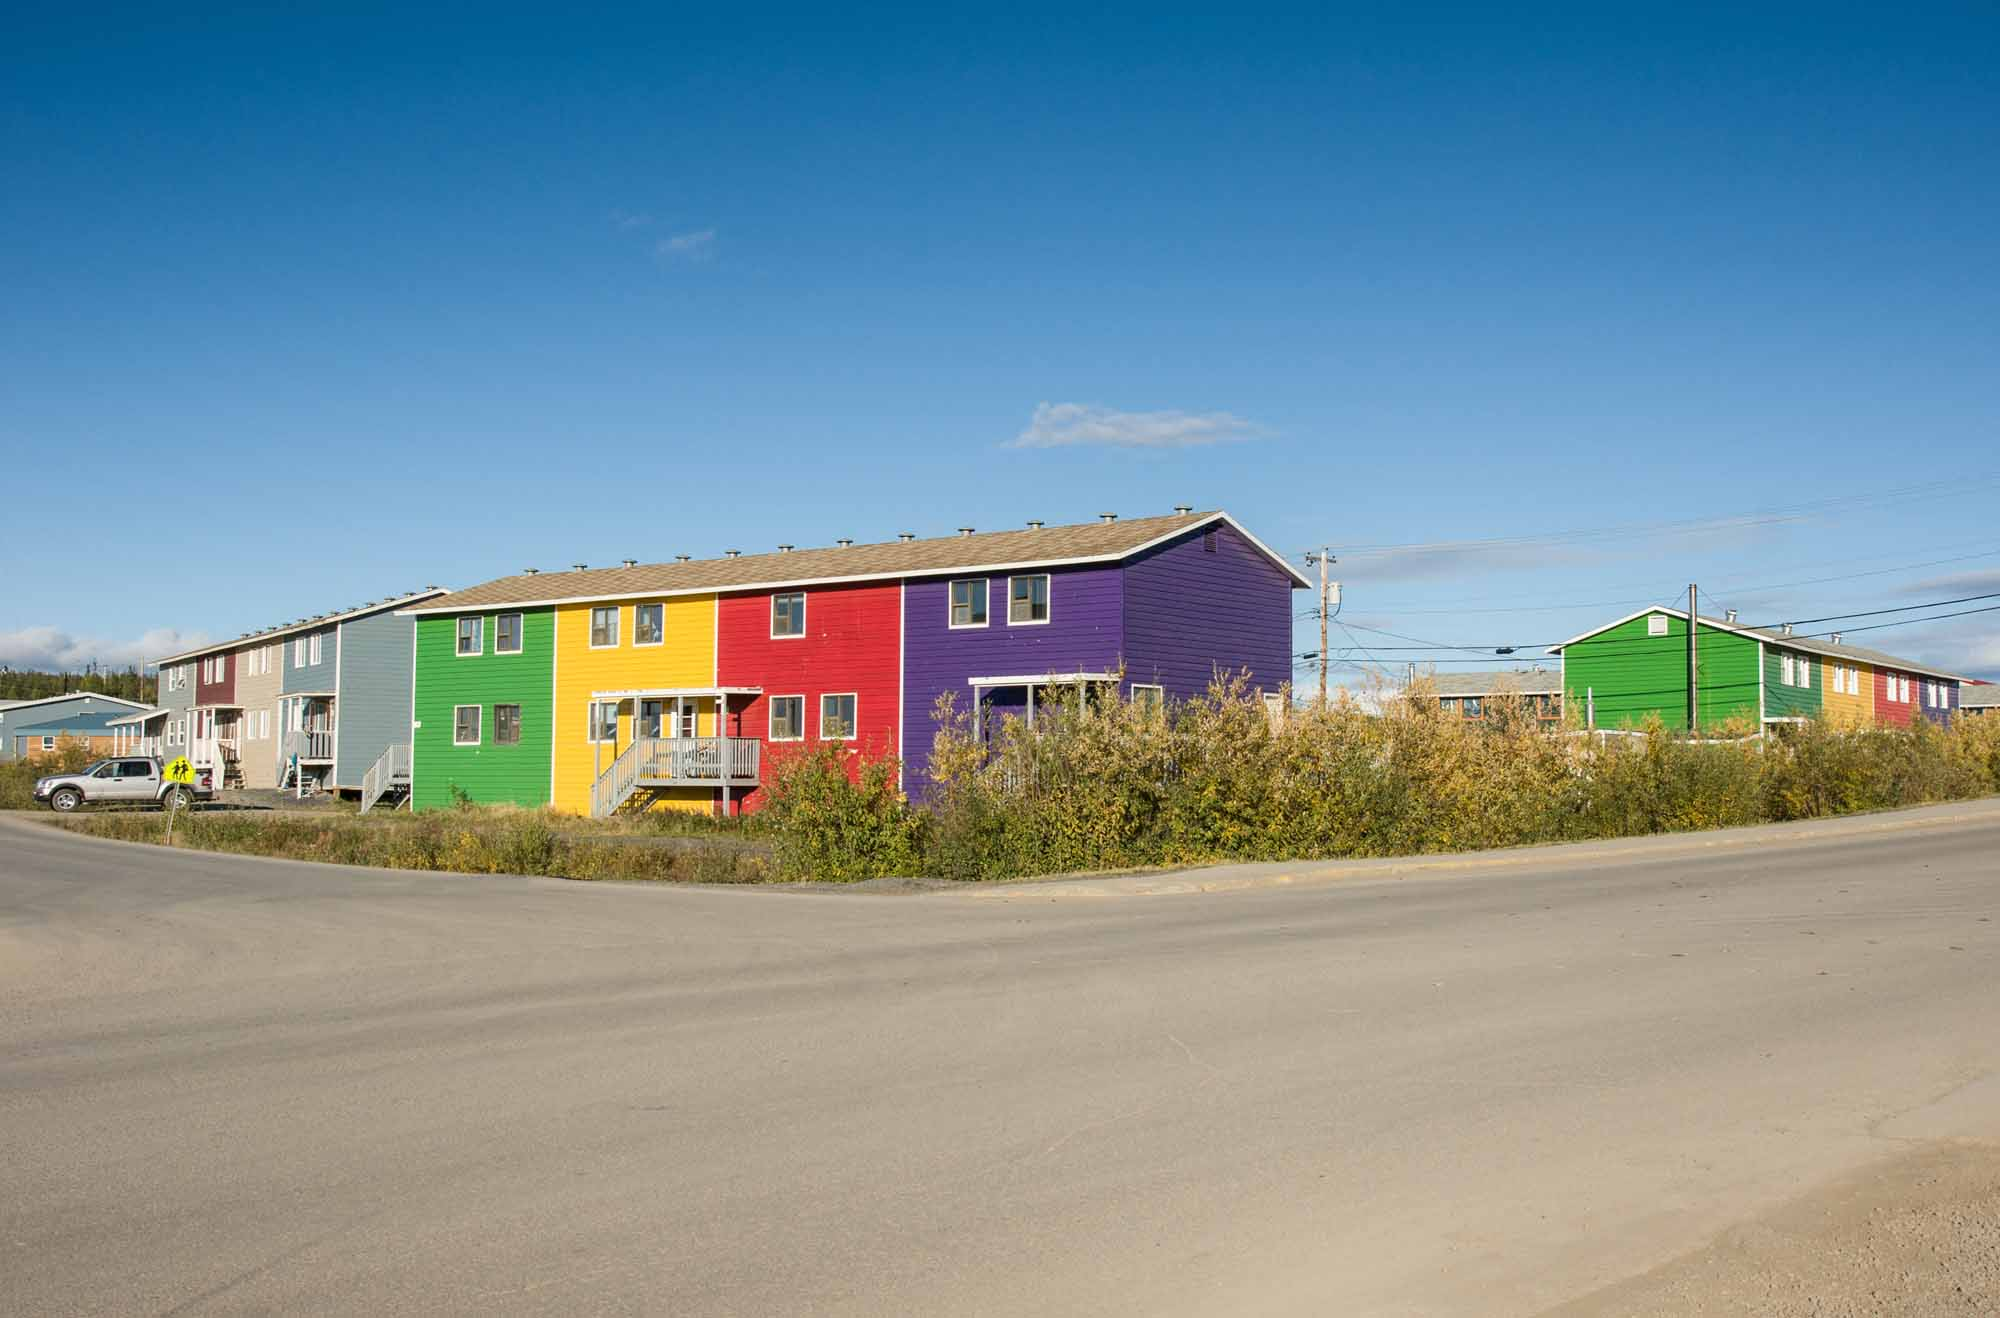 Des appartements colorés à Inuvik